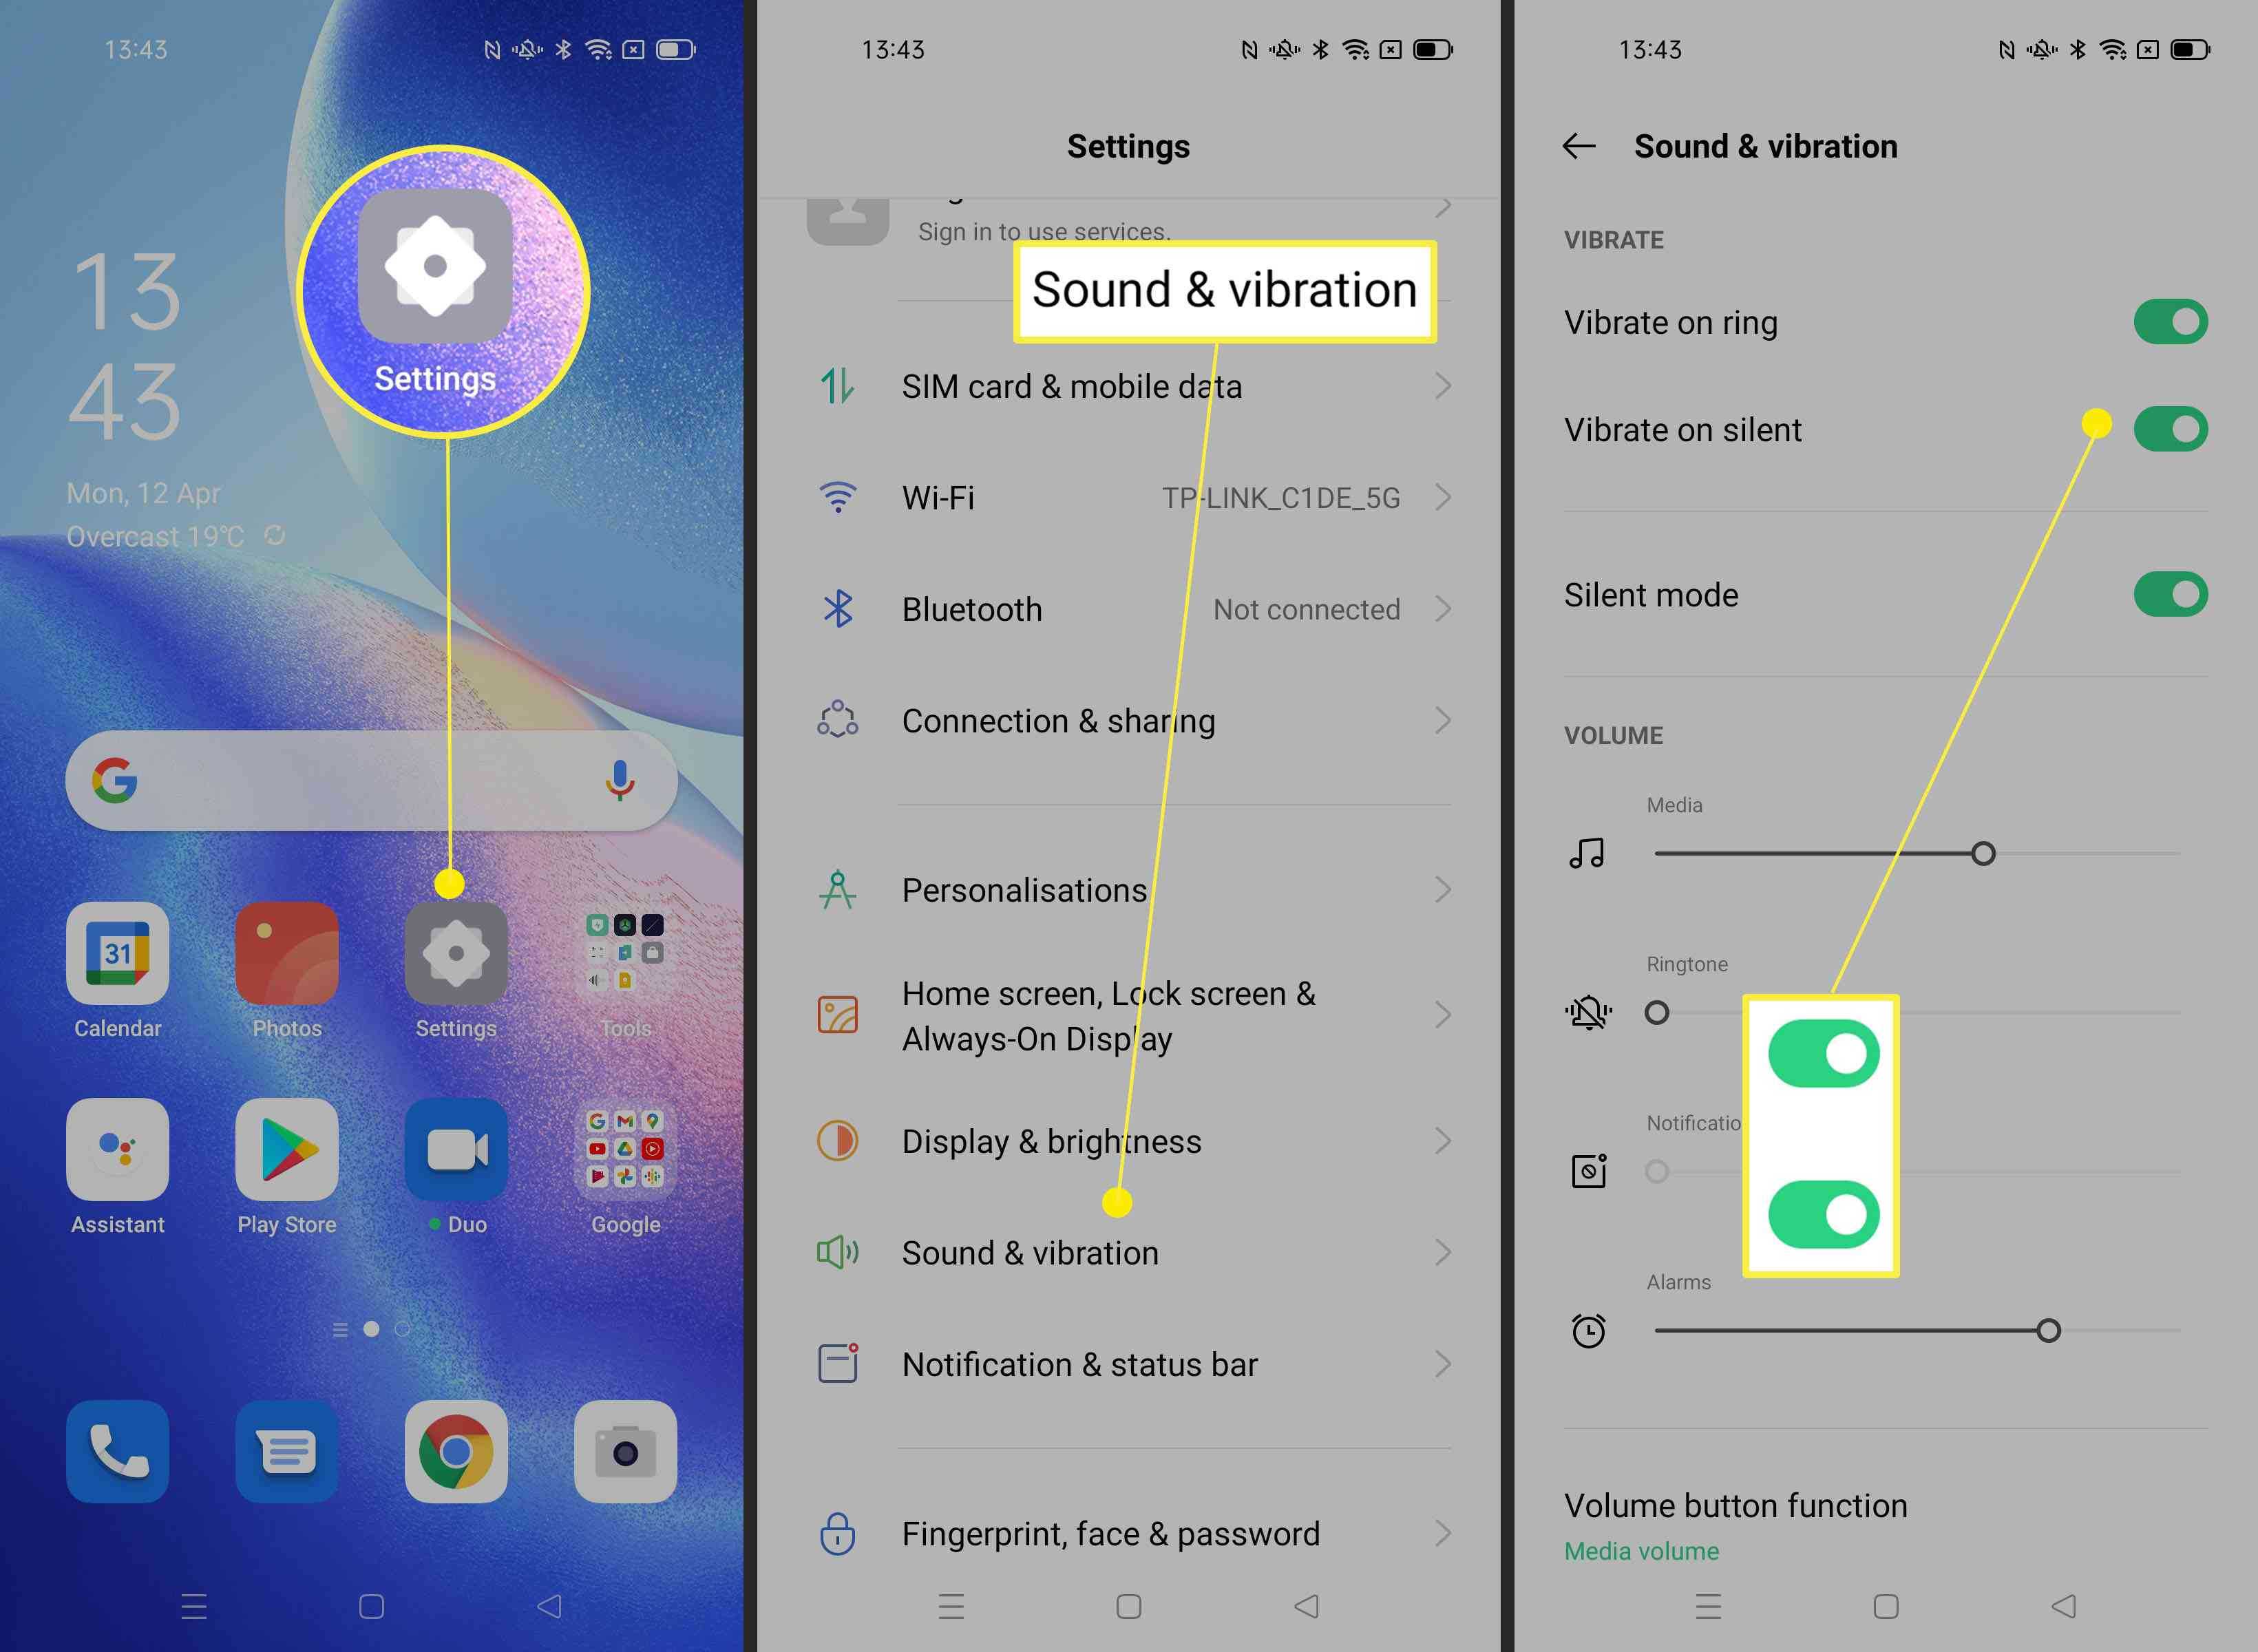 Steps required to adjust vibration on Android phone